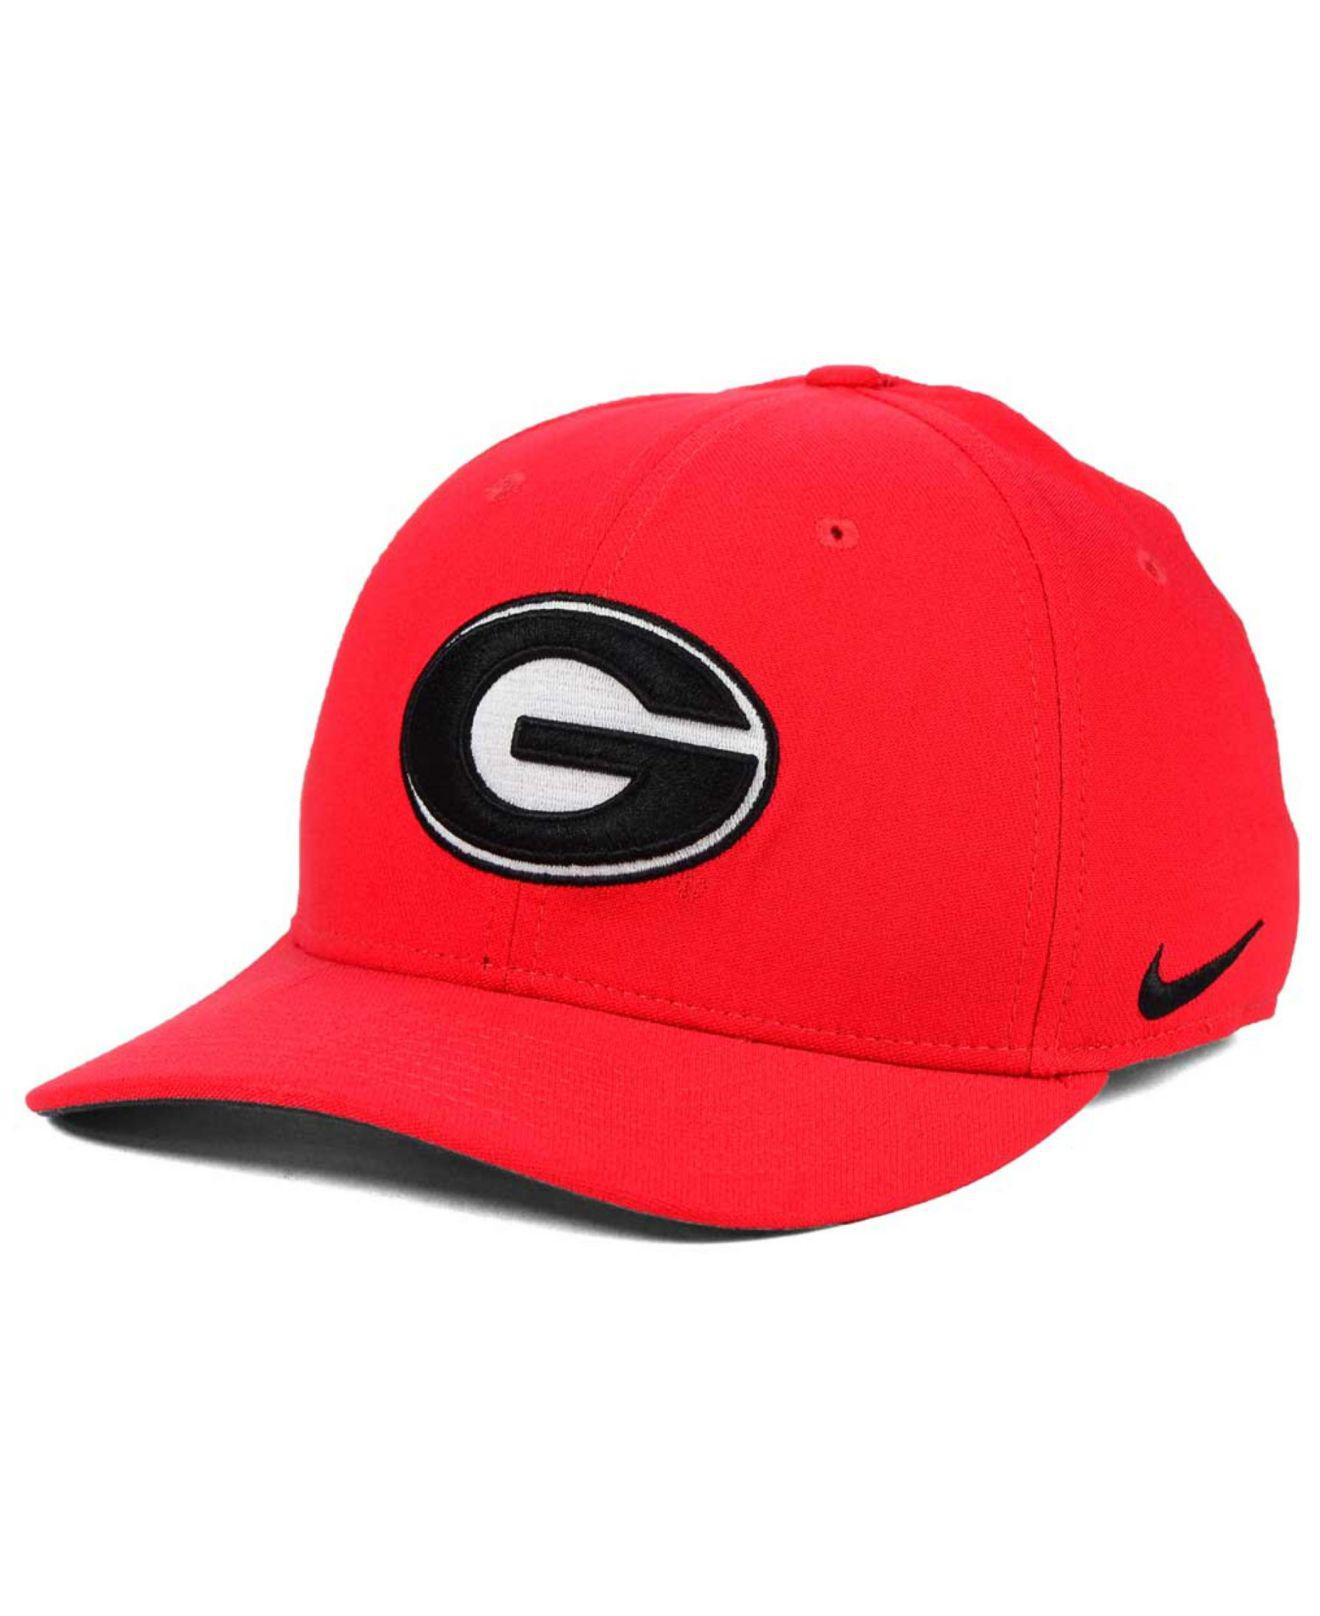 966eeb4d6ea3f Lyst - Nike Georgia Bulldogs Classic Swoosh Cap in Red for Men